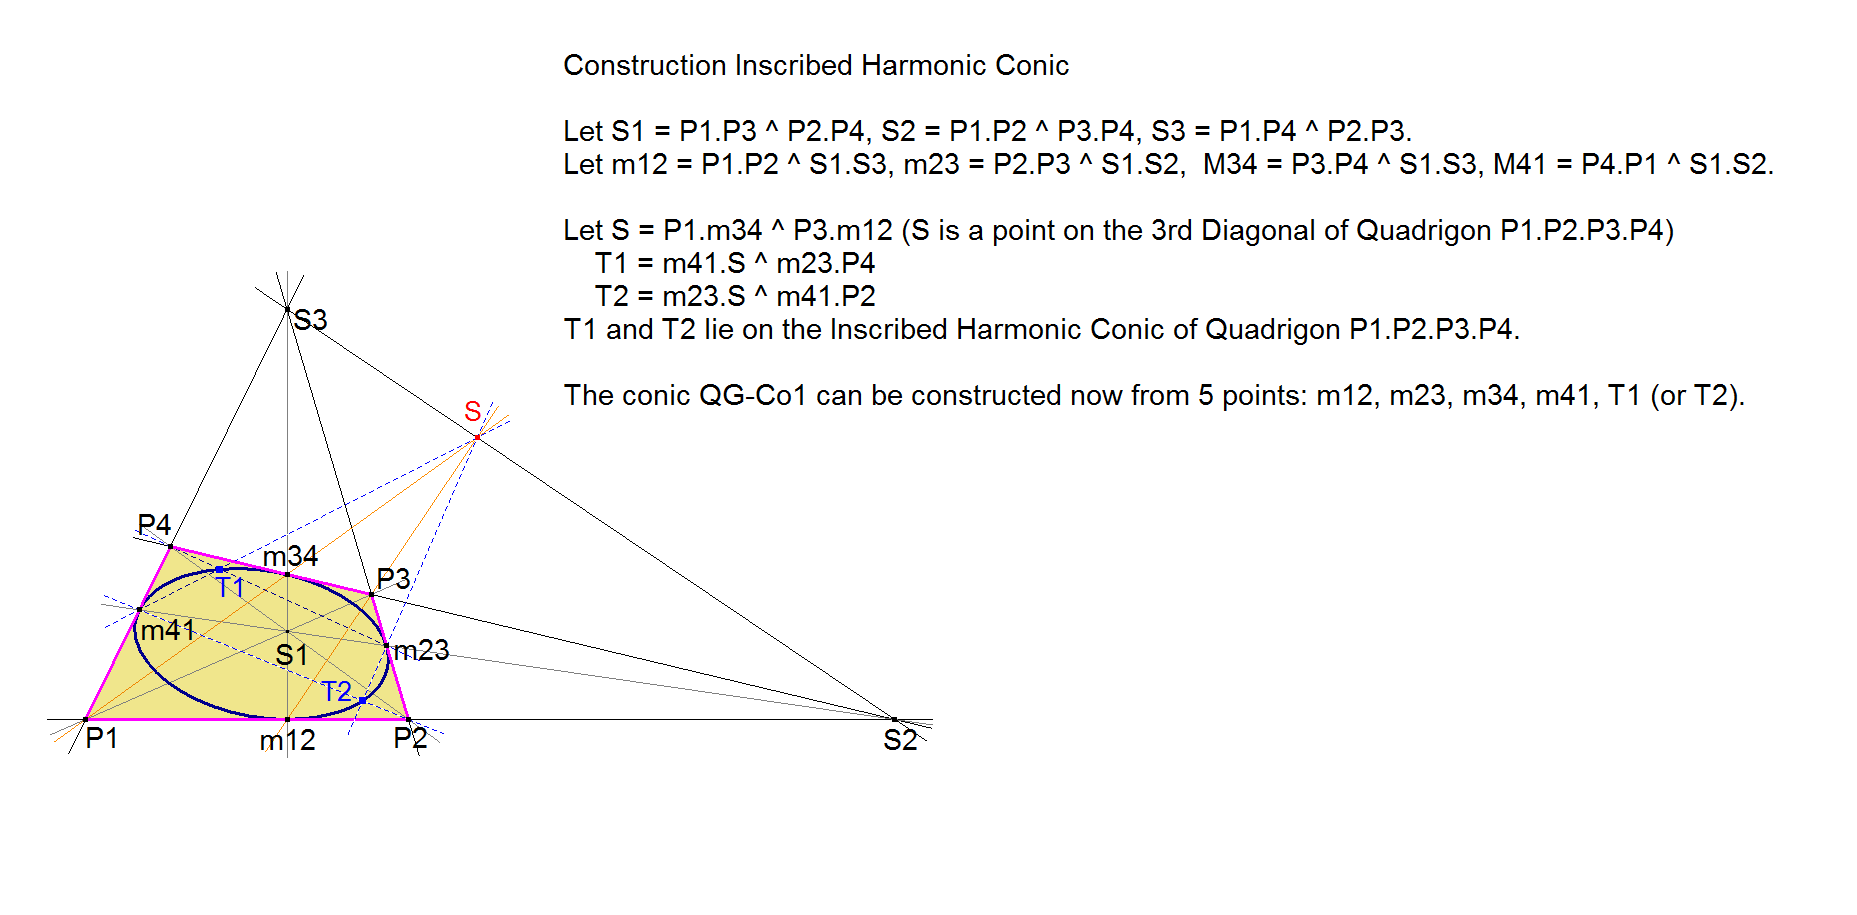 QG-Co1-Inscribed-Harmonic-Conic-20-Constr